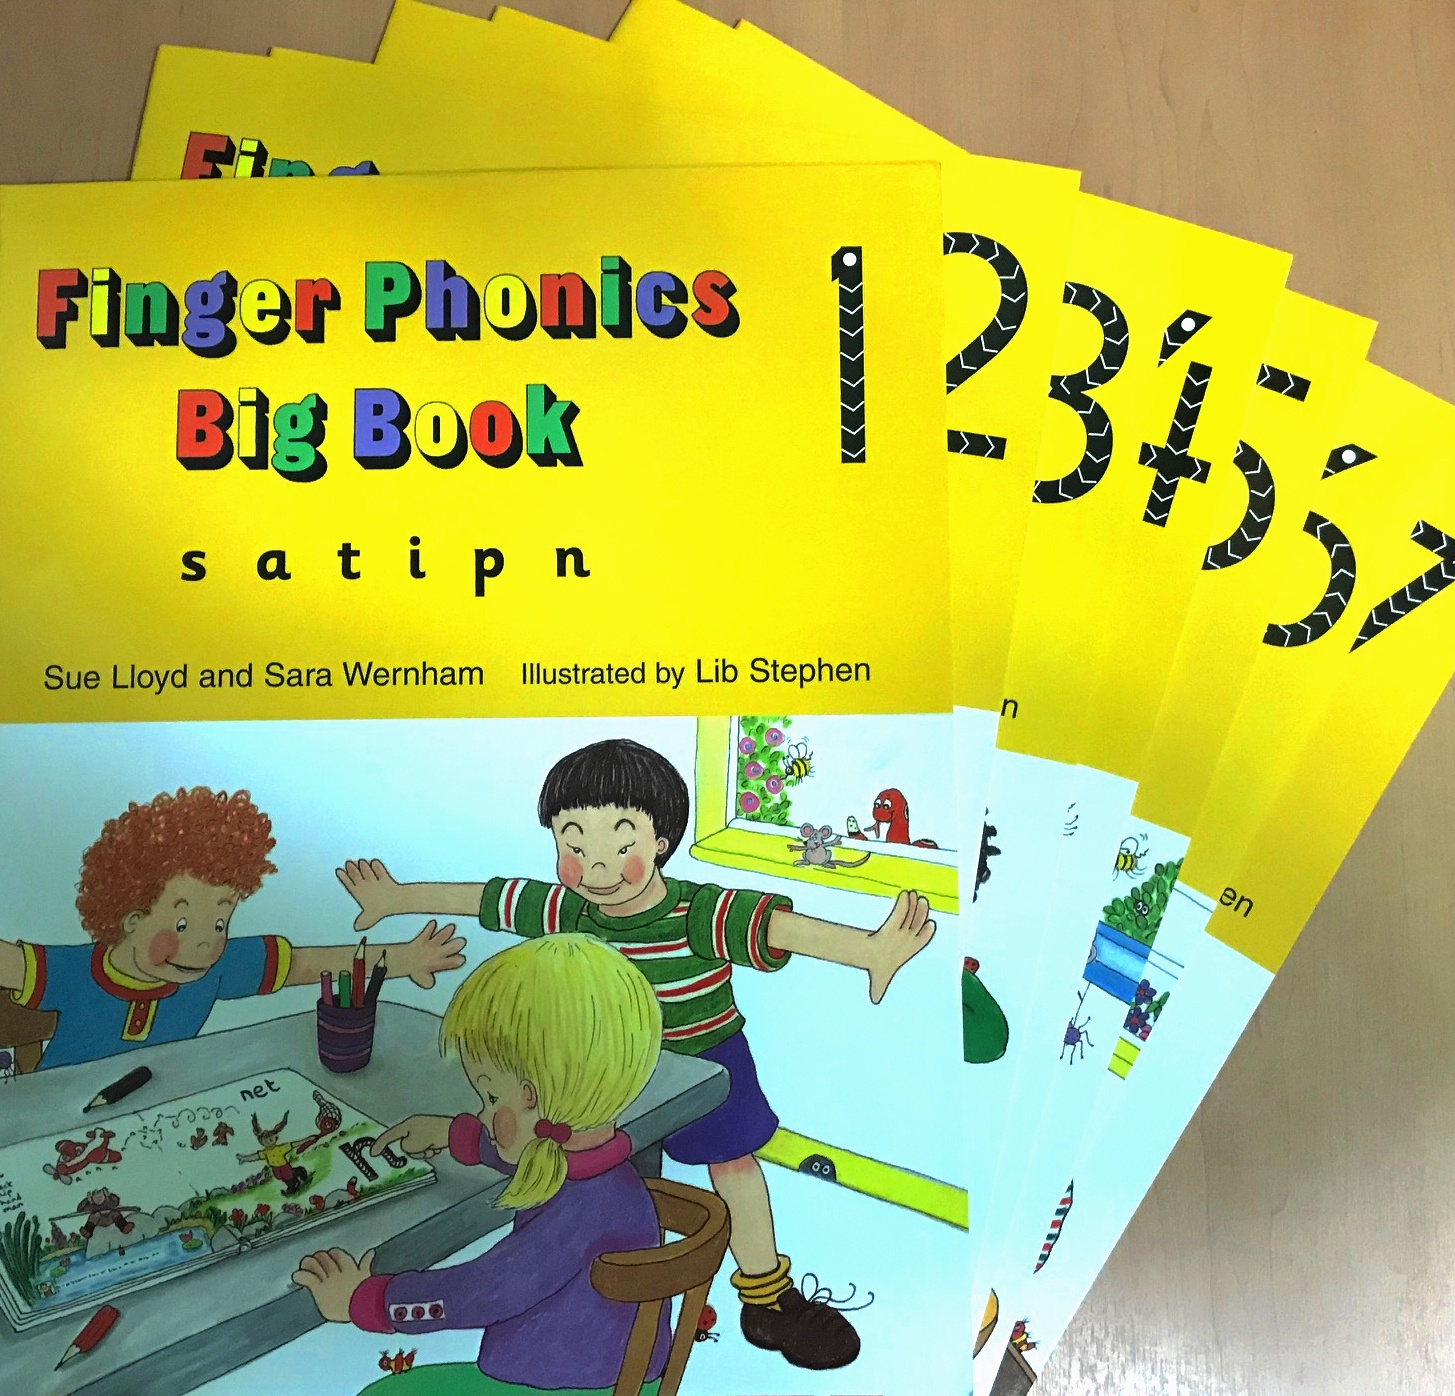 Jolly Finger Phonics Big Books 1-7 jolly phonics activity books set 1 7 комплект из 7 книг